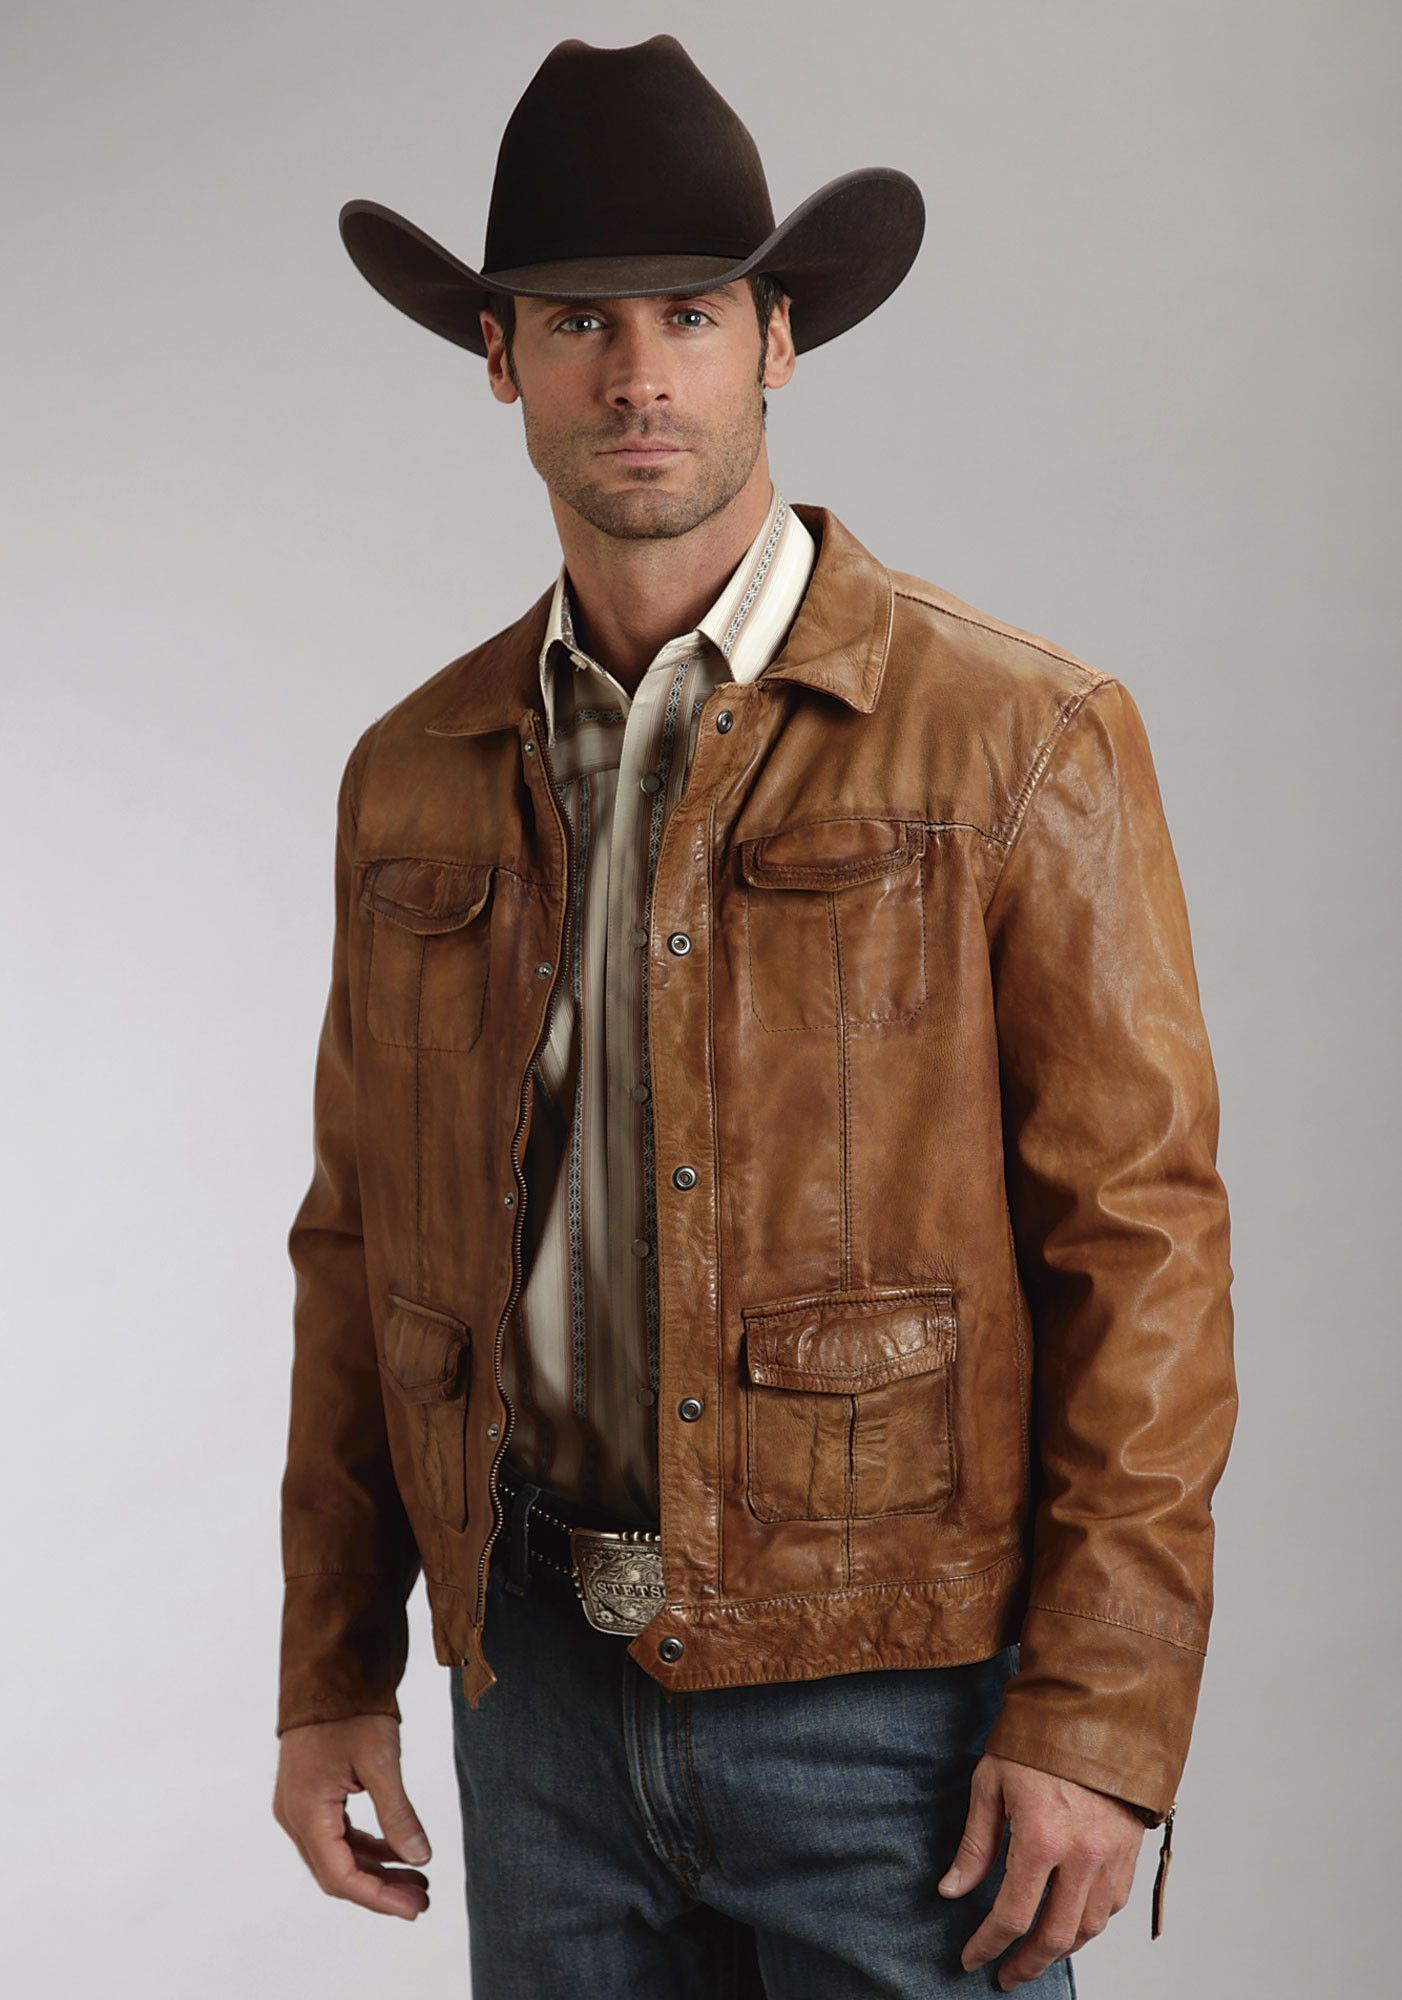 For High Quality Traditional Western Apparel With Lasting Style Look No Further Than Stetson This Cowboy Outfit For Men Mens Fashion Rugged Leather Jacket [ 2000 x 1402 Pixel ]